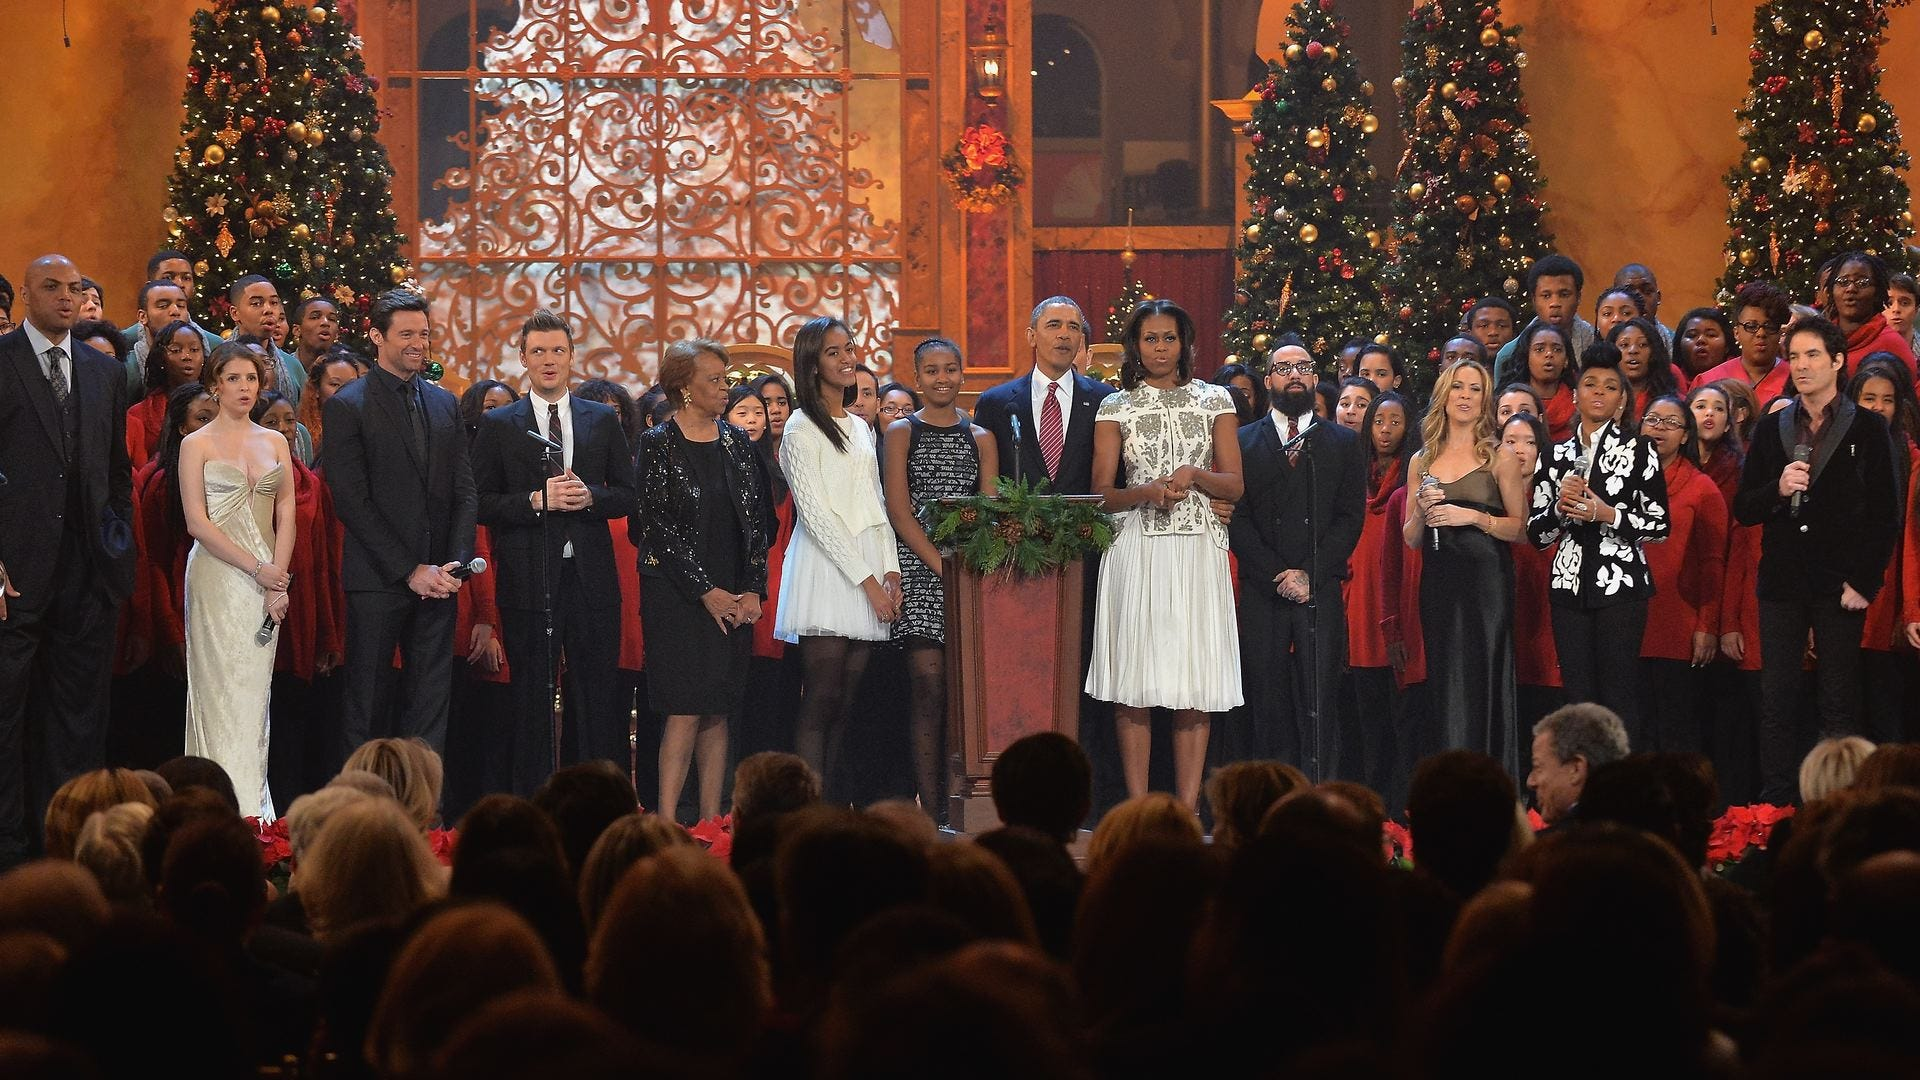 Christmas Eve In Washington.Fun Times With The Obamas Backstreet Boys At Christmas In Washington Dailydish